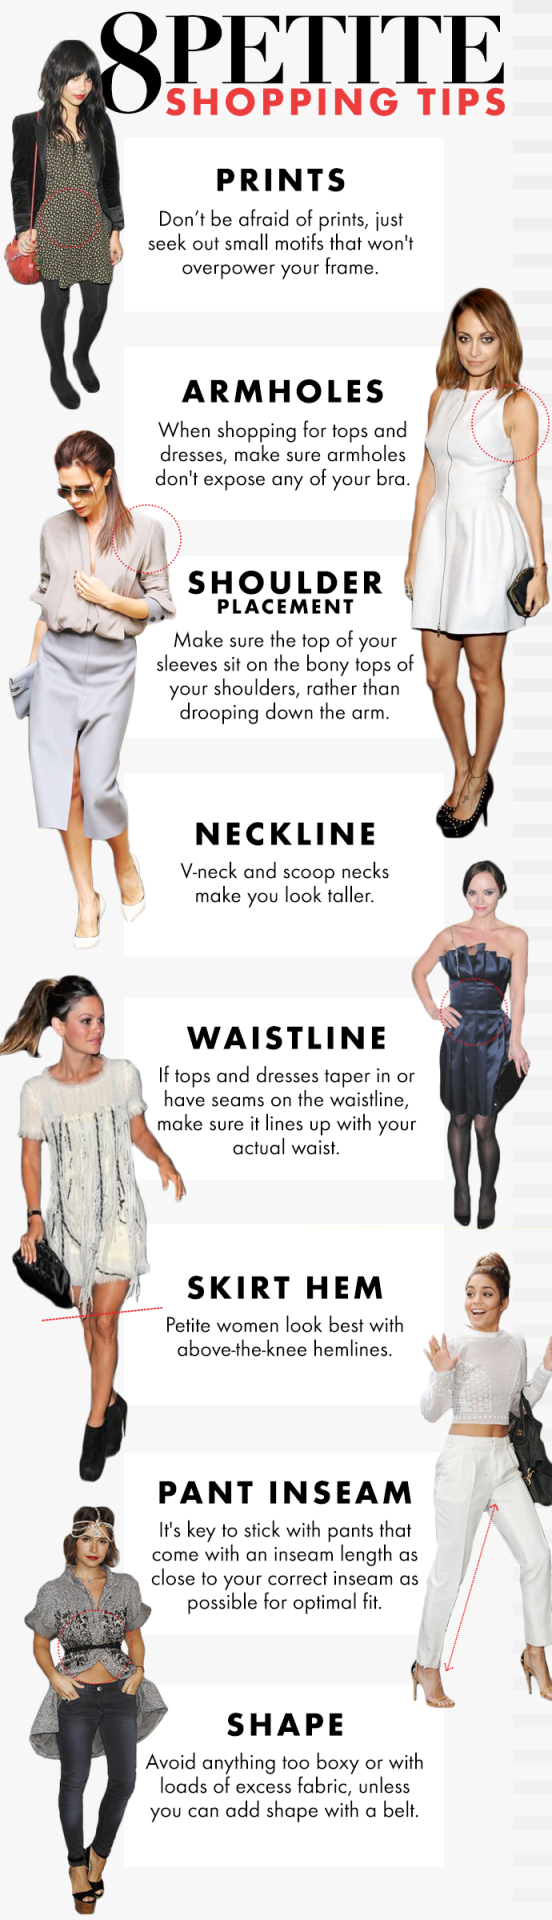 insanely helpful style charts every woman needs right now